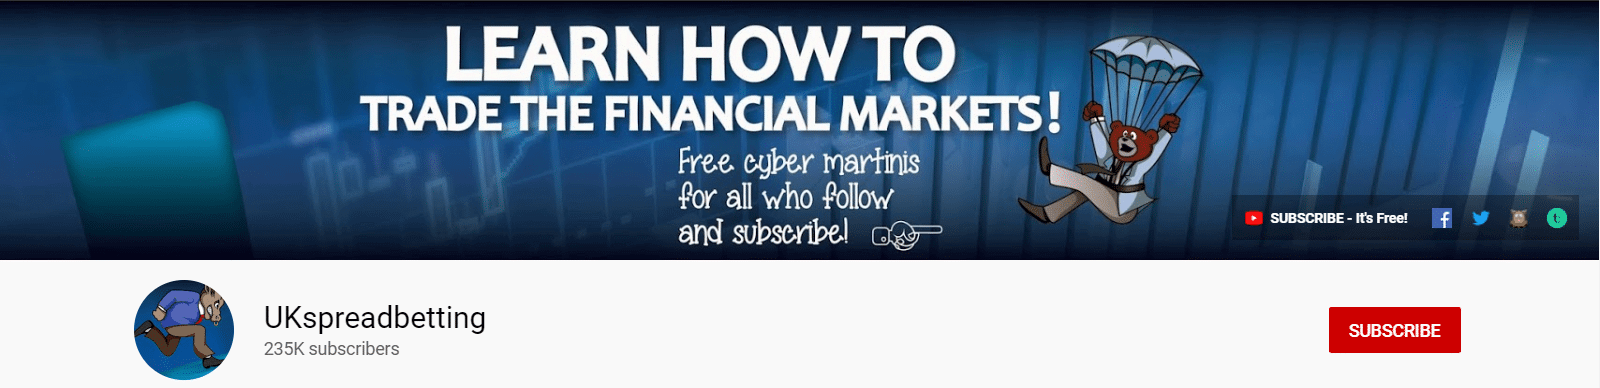 top 10 forex youtube channels - UKspreadbetting